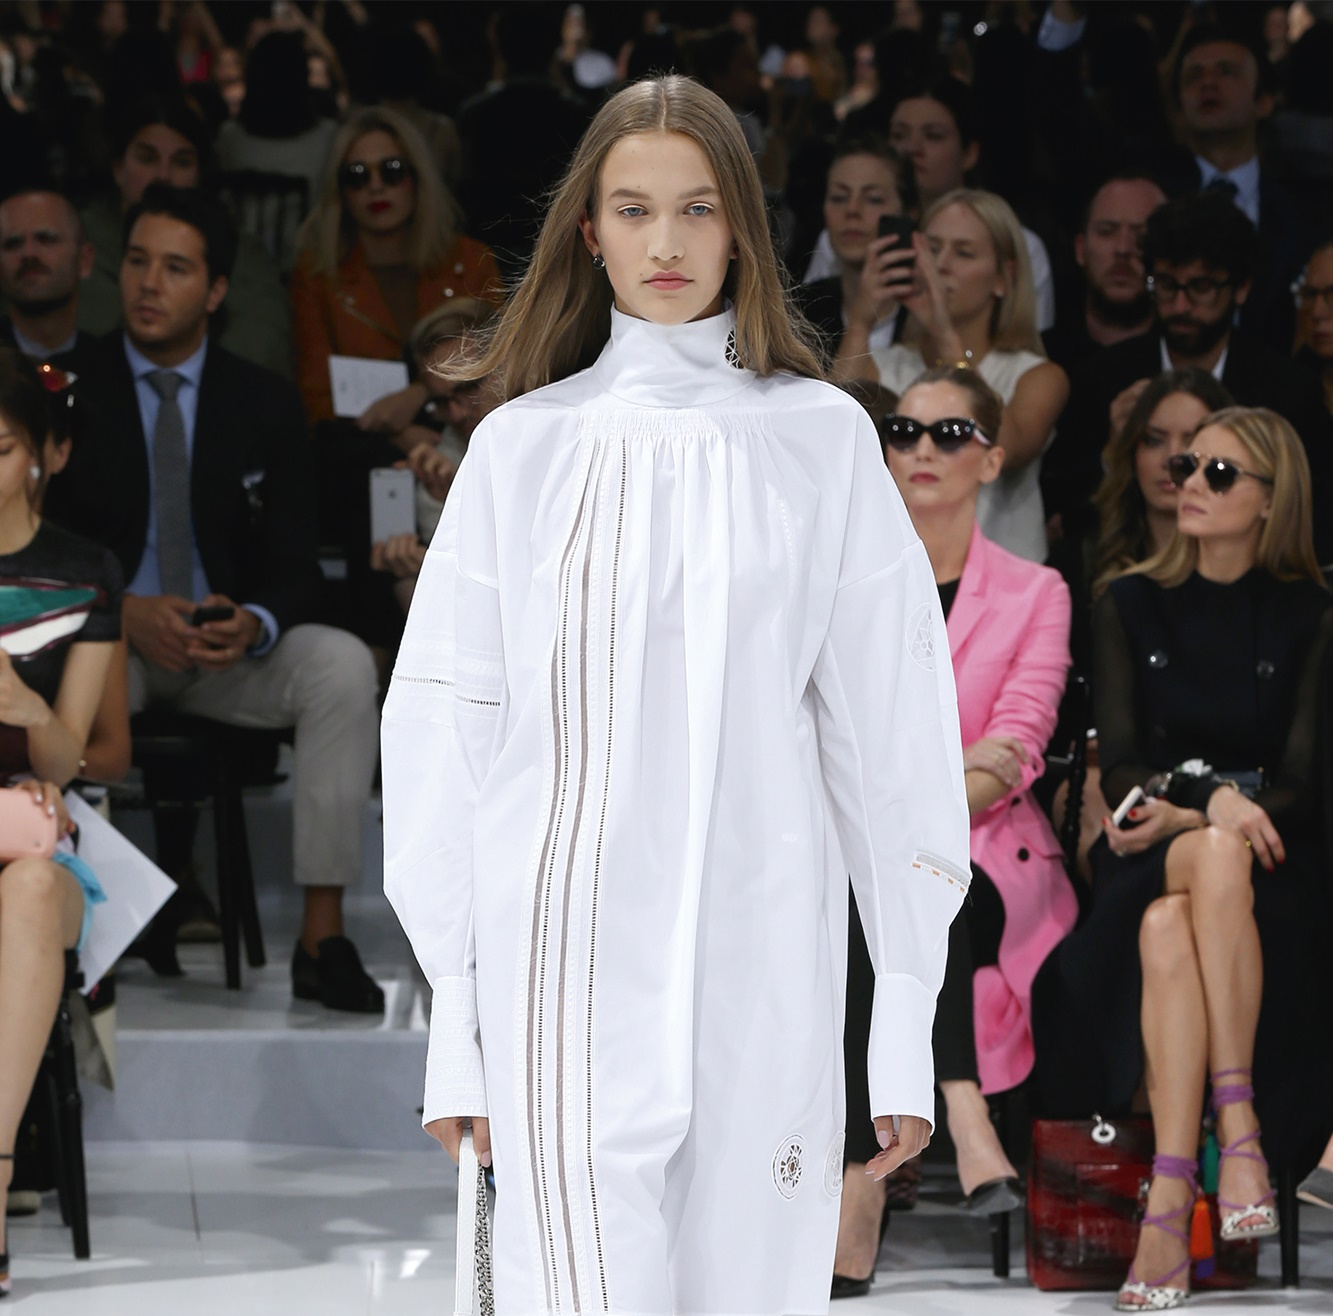 christian-dior-spring-summer-RTW-collection (22)